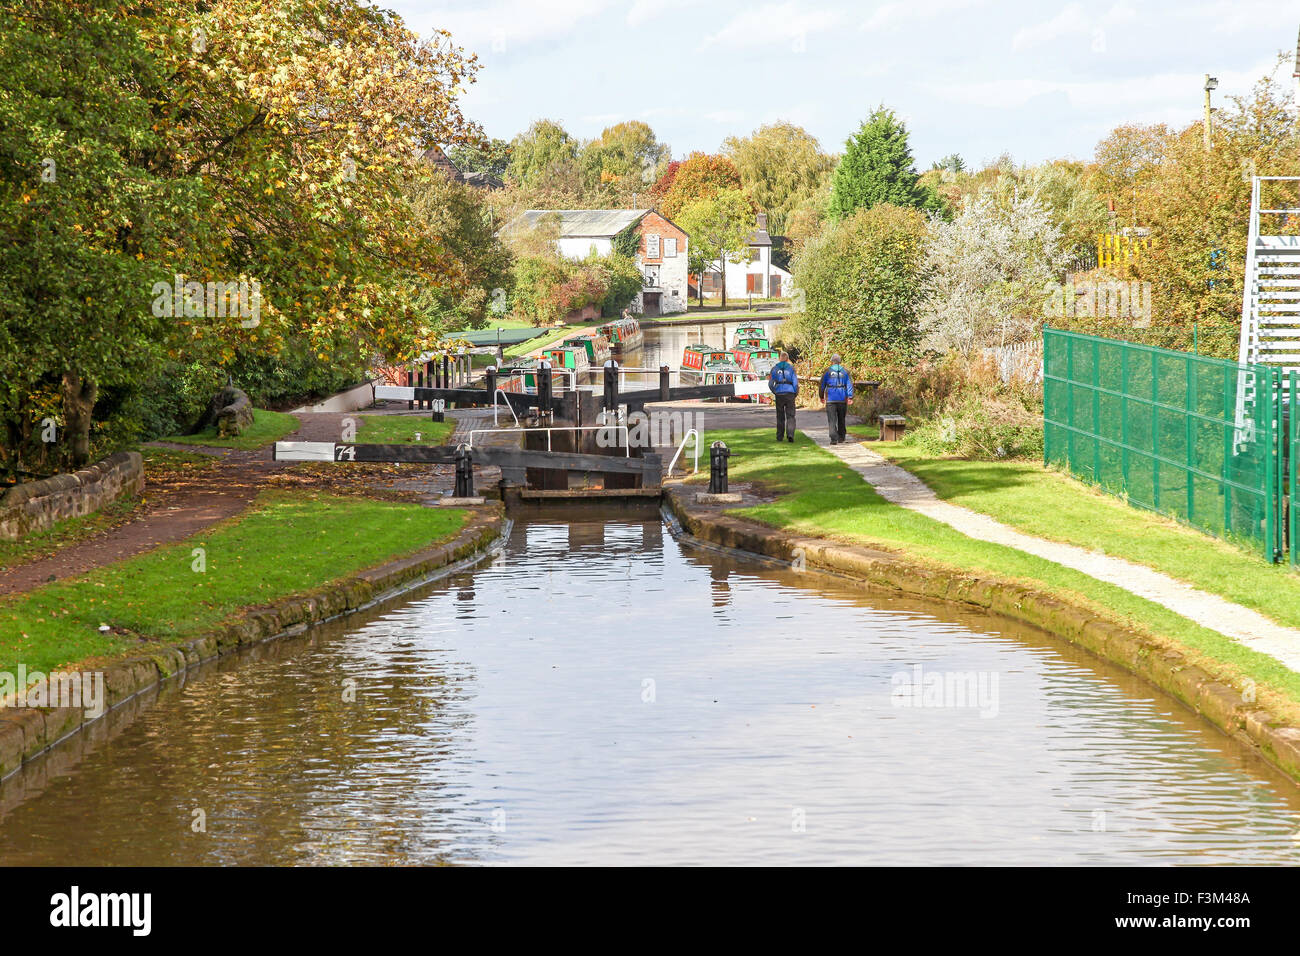 The Kings Lock Chandlery or boatyard on the Trent and Mersey Canal Middlewich Cheshire England UK - Stock Image